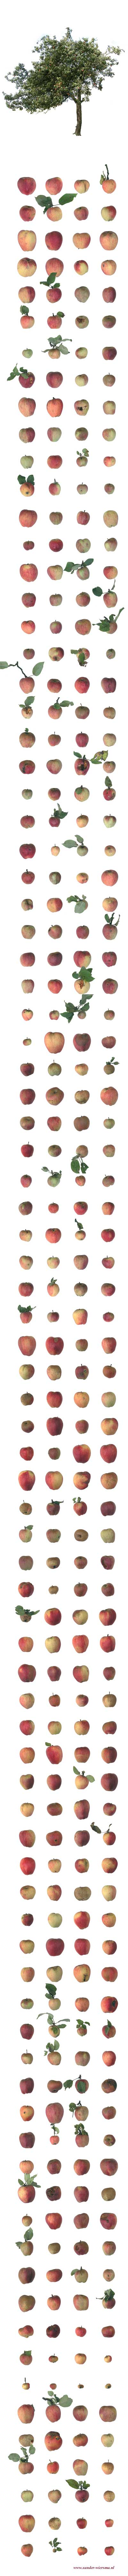 all-apples-of-one-tree